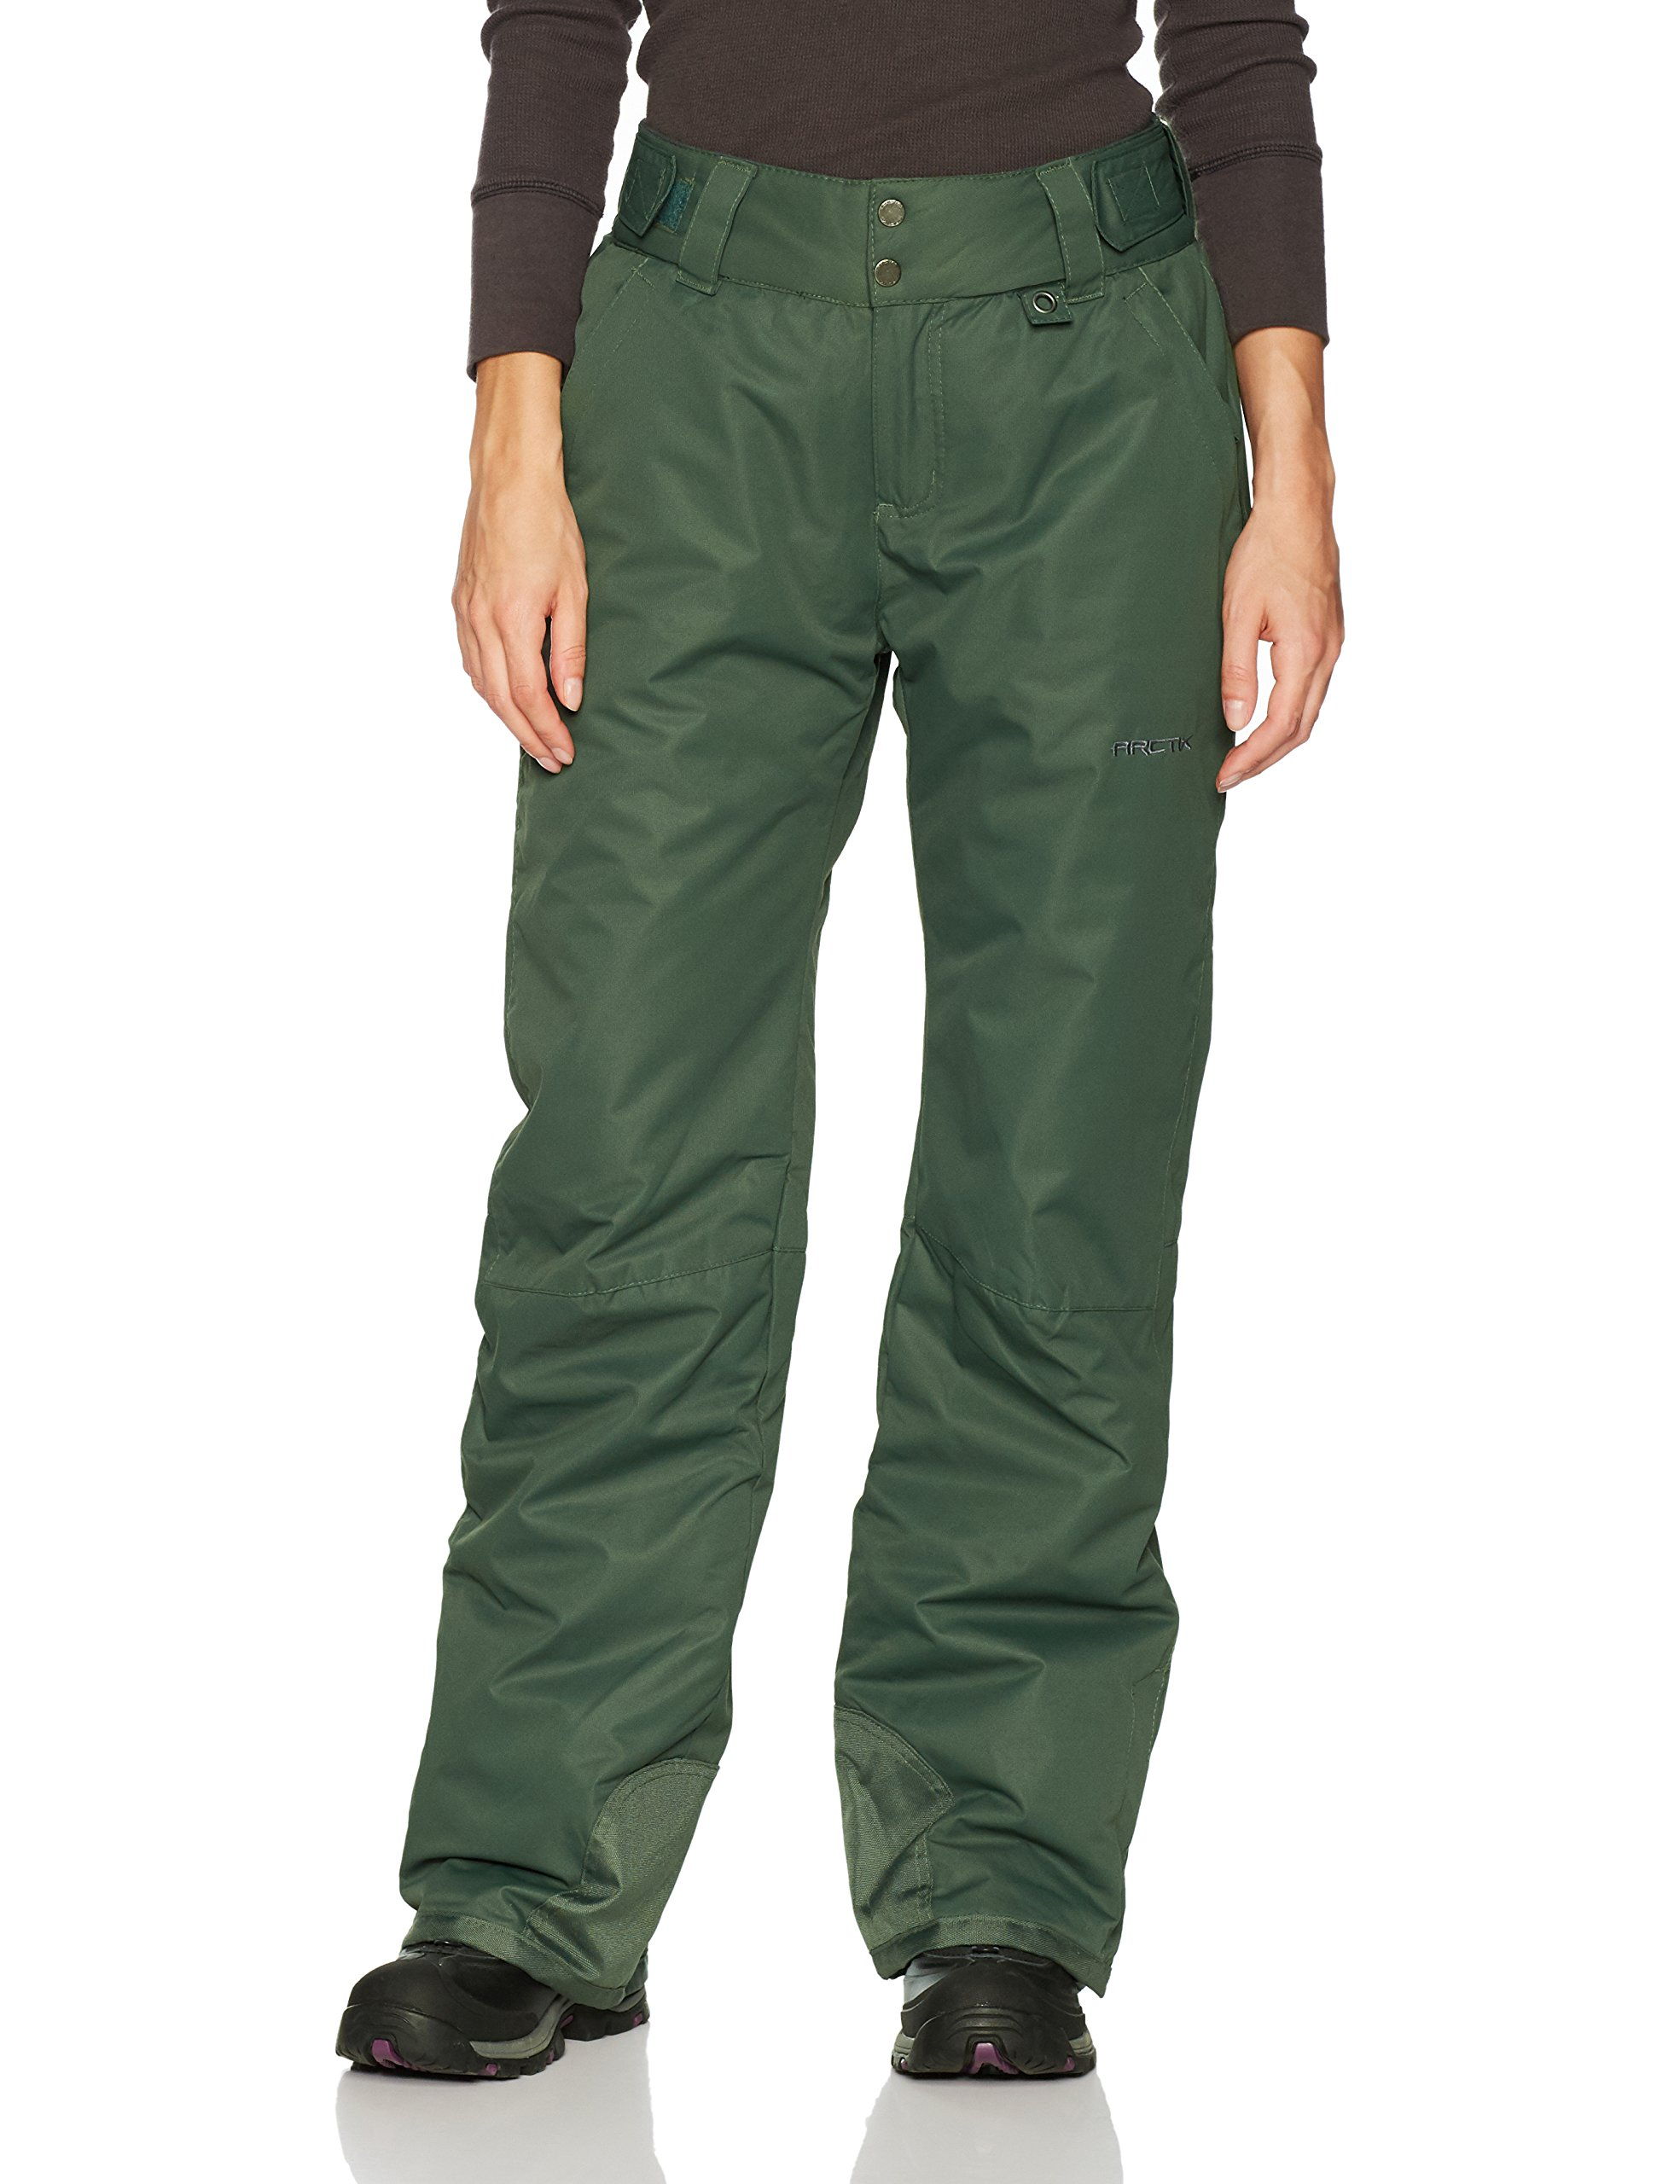 Arctix Women's Insulated Snow Pants, Fern Green, Medium/Regular by Arctix